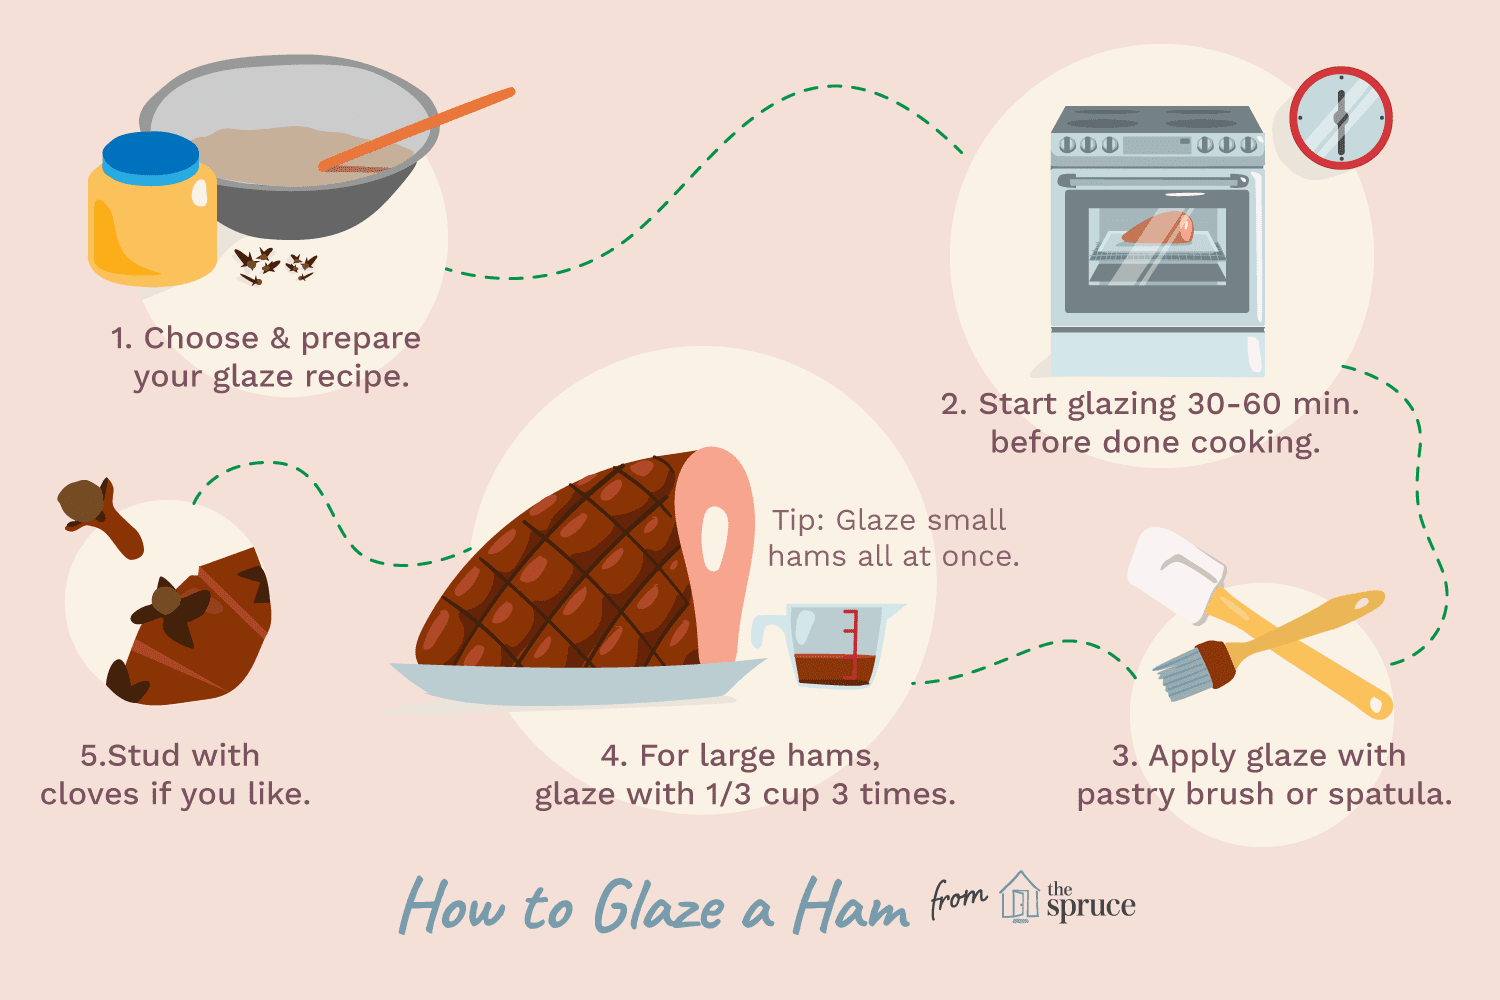 hight resolution of how to glaze a ham illustration